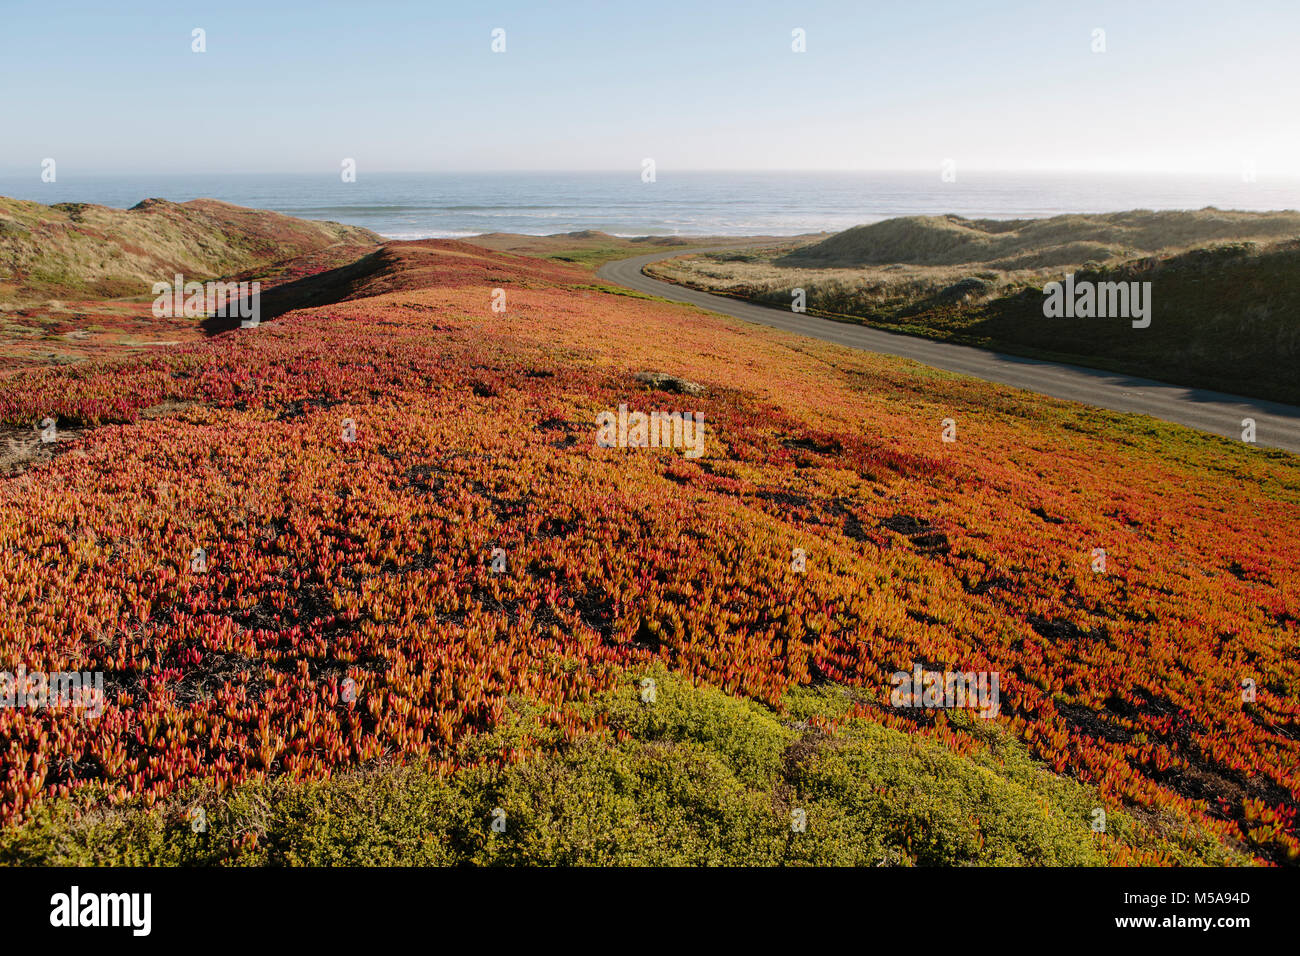 Landscape covered with ice plant. - Stock Image